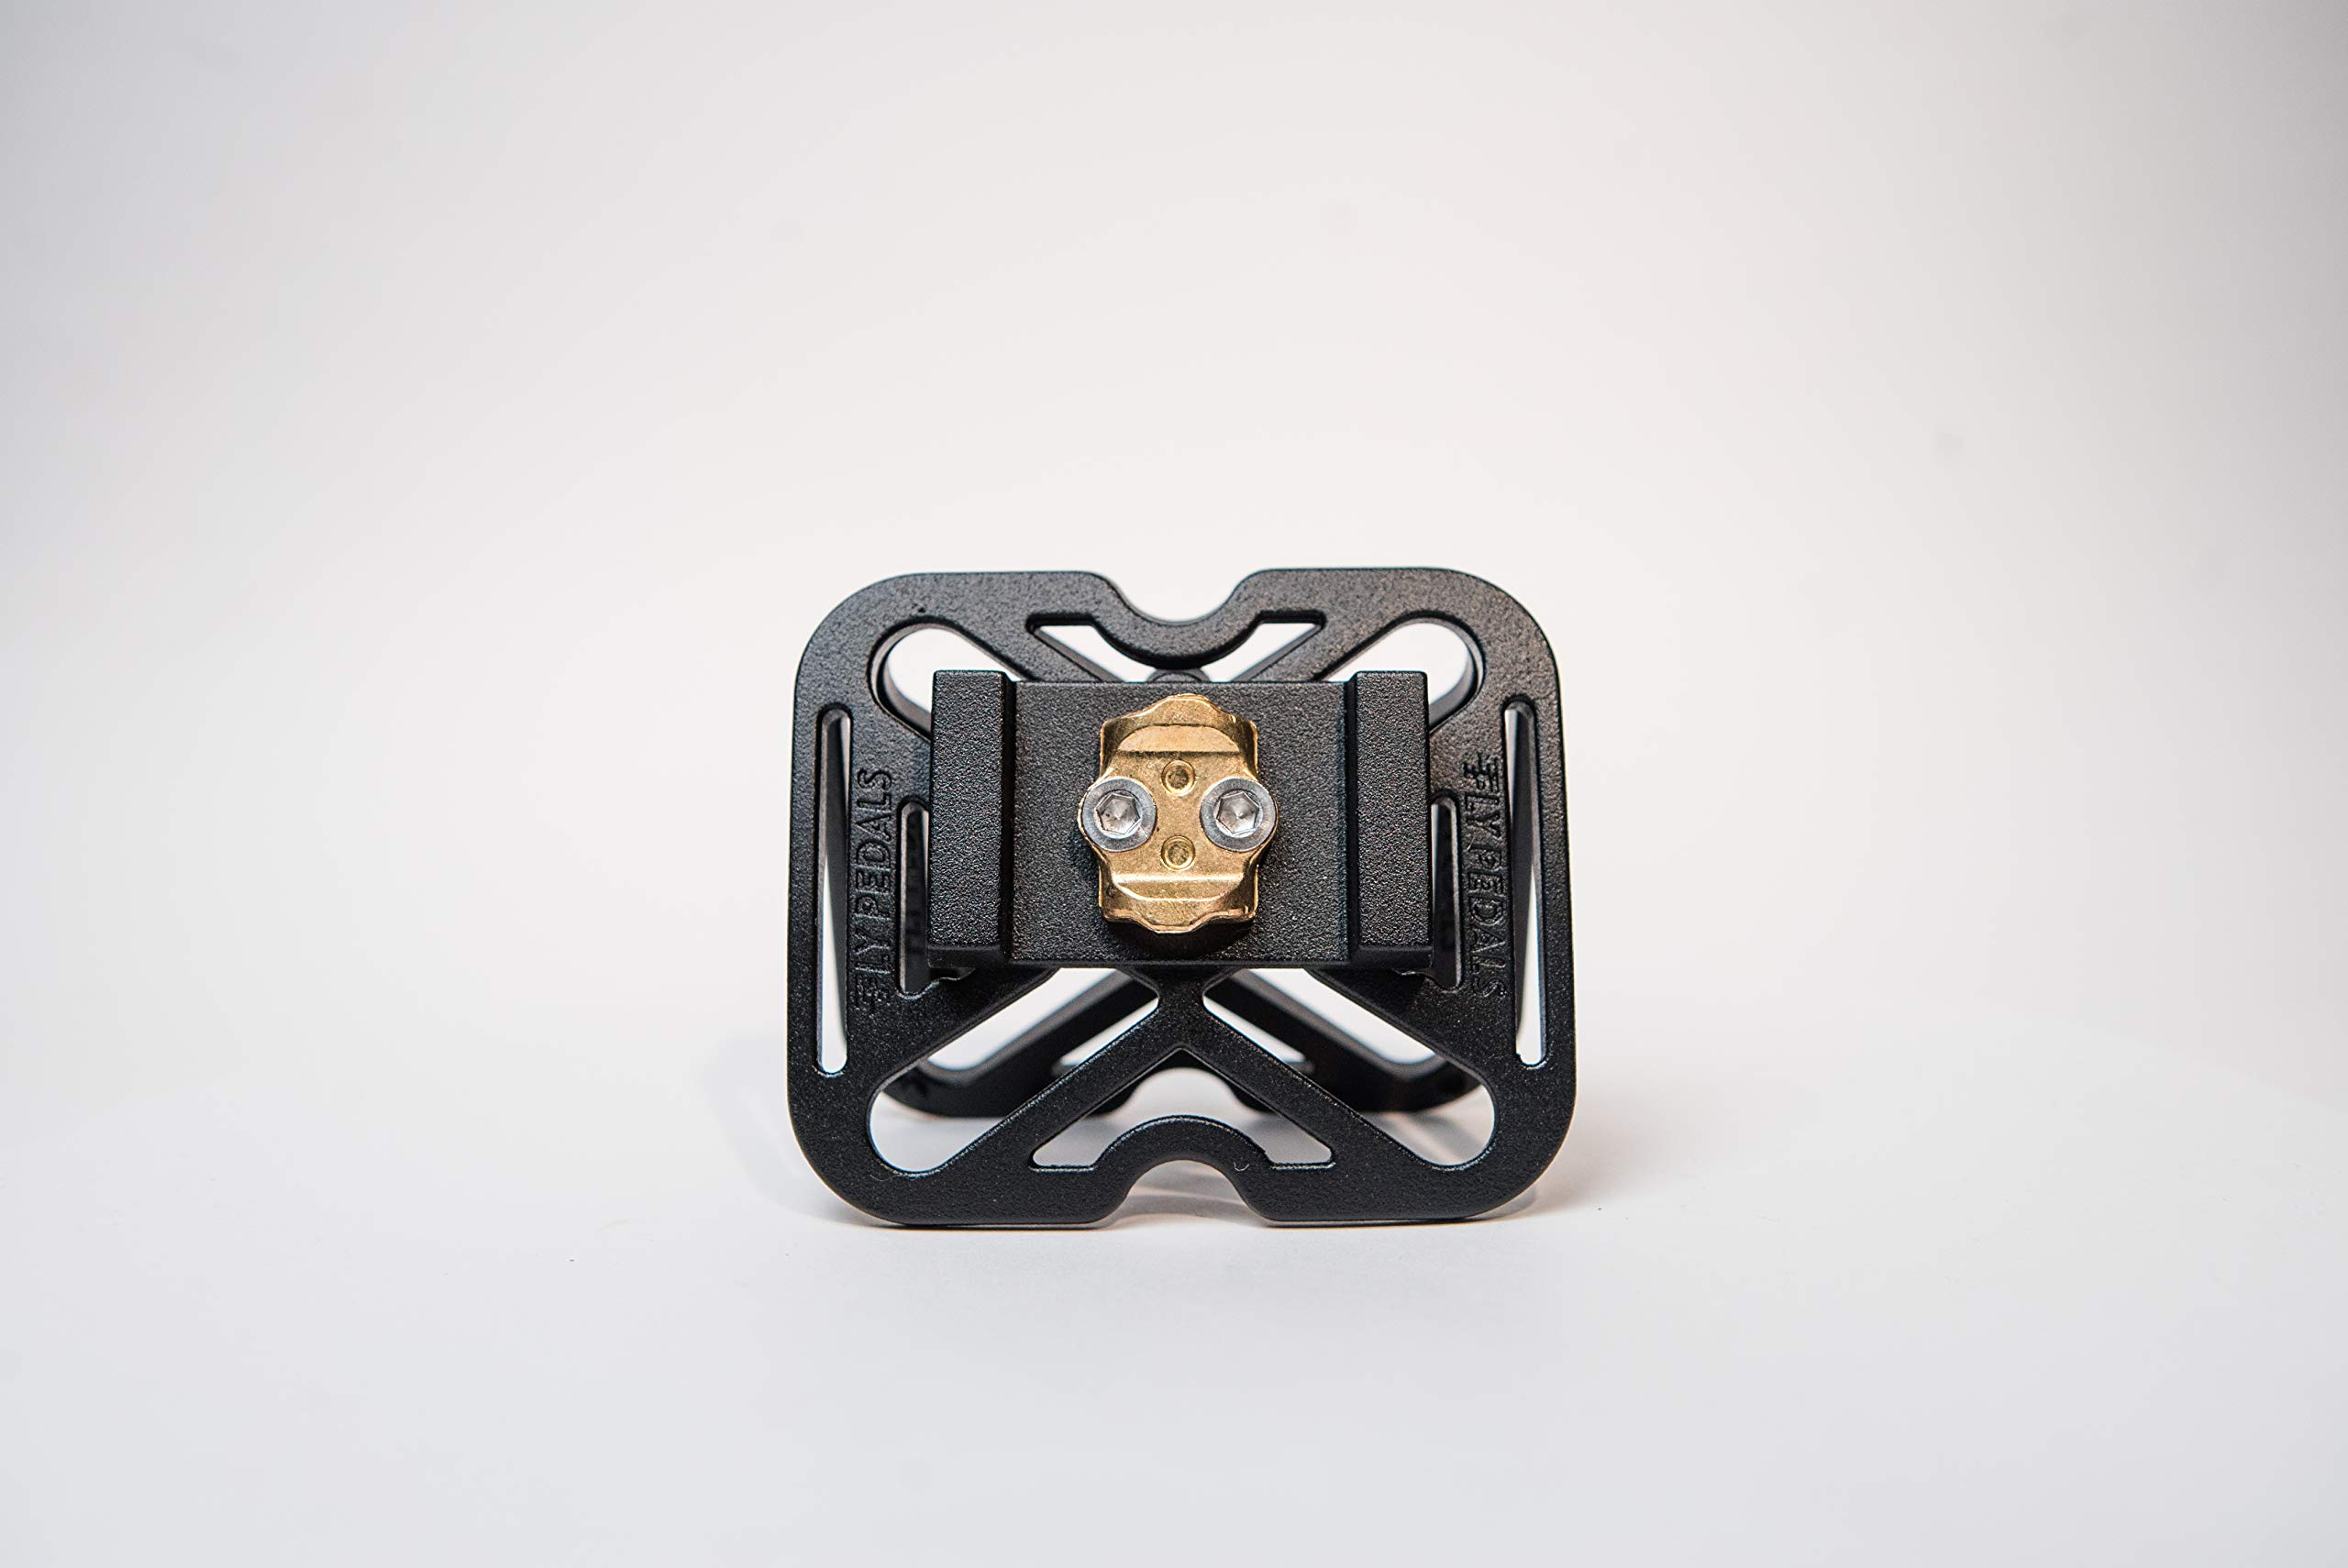 Fly Pedals II Convert Clip to Platform Universal Clipless Platform Adapters by Fly Pedals